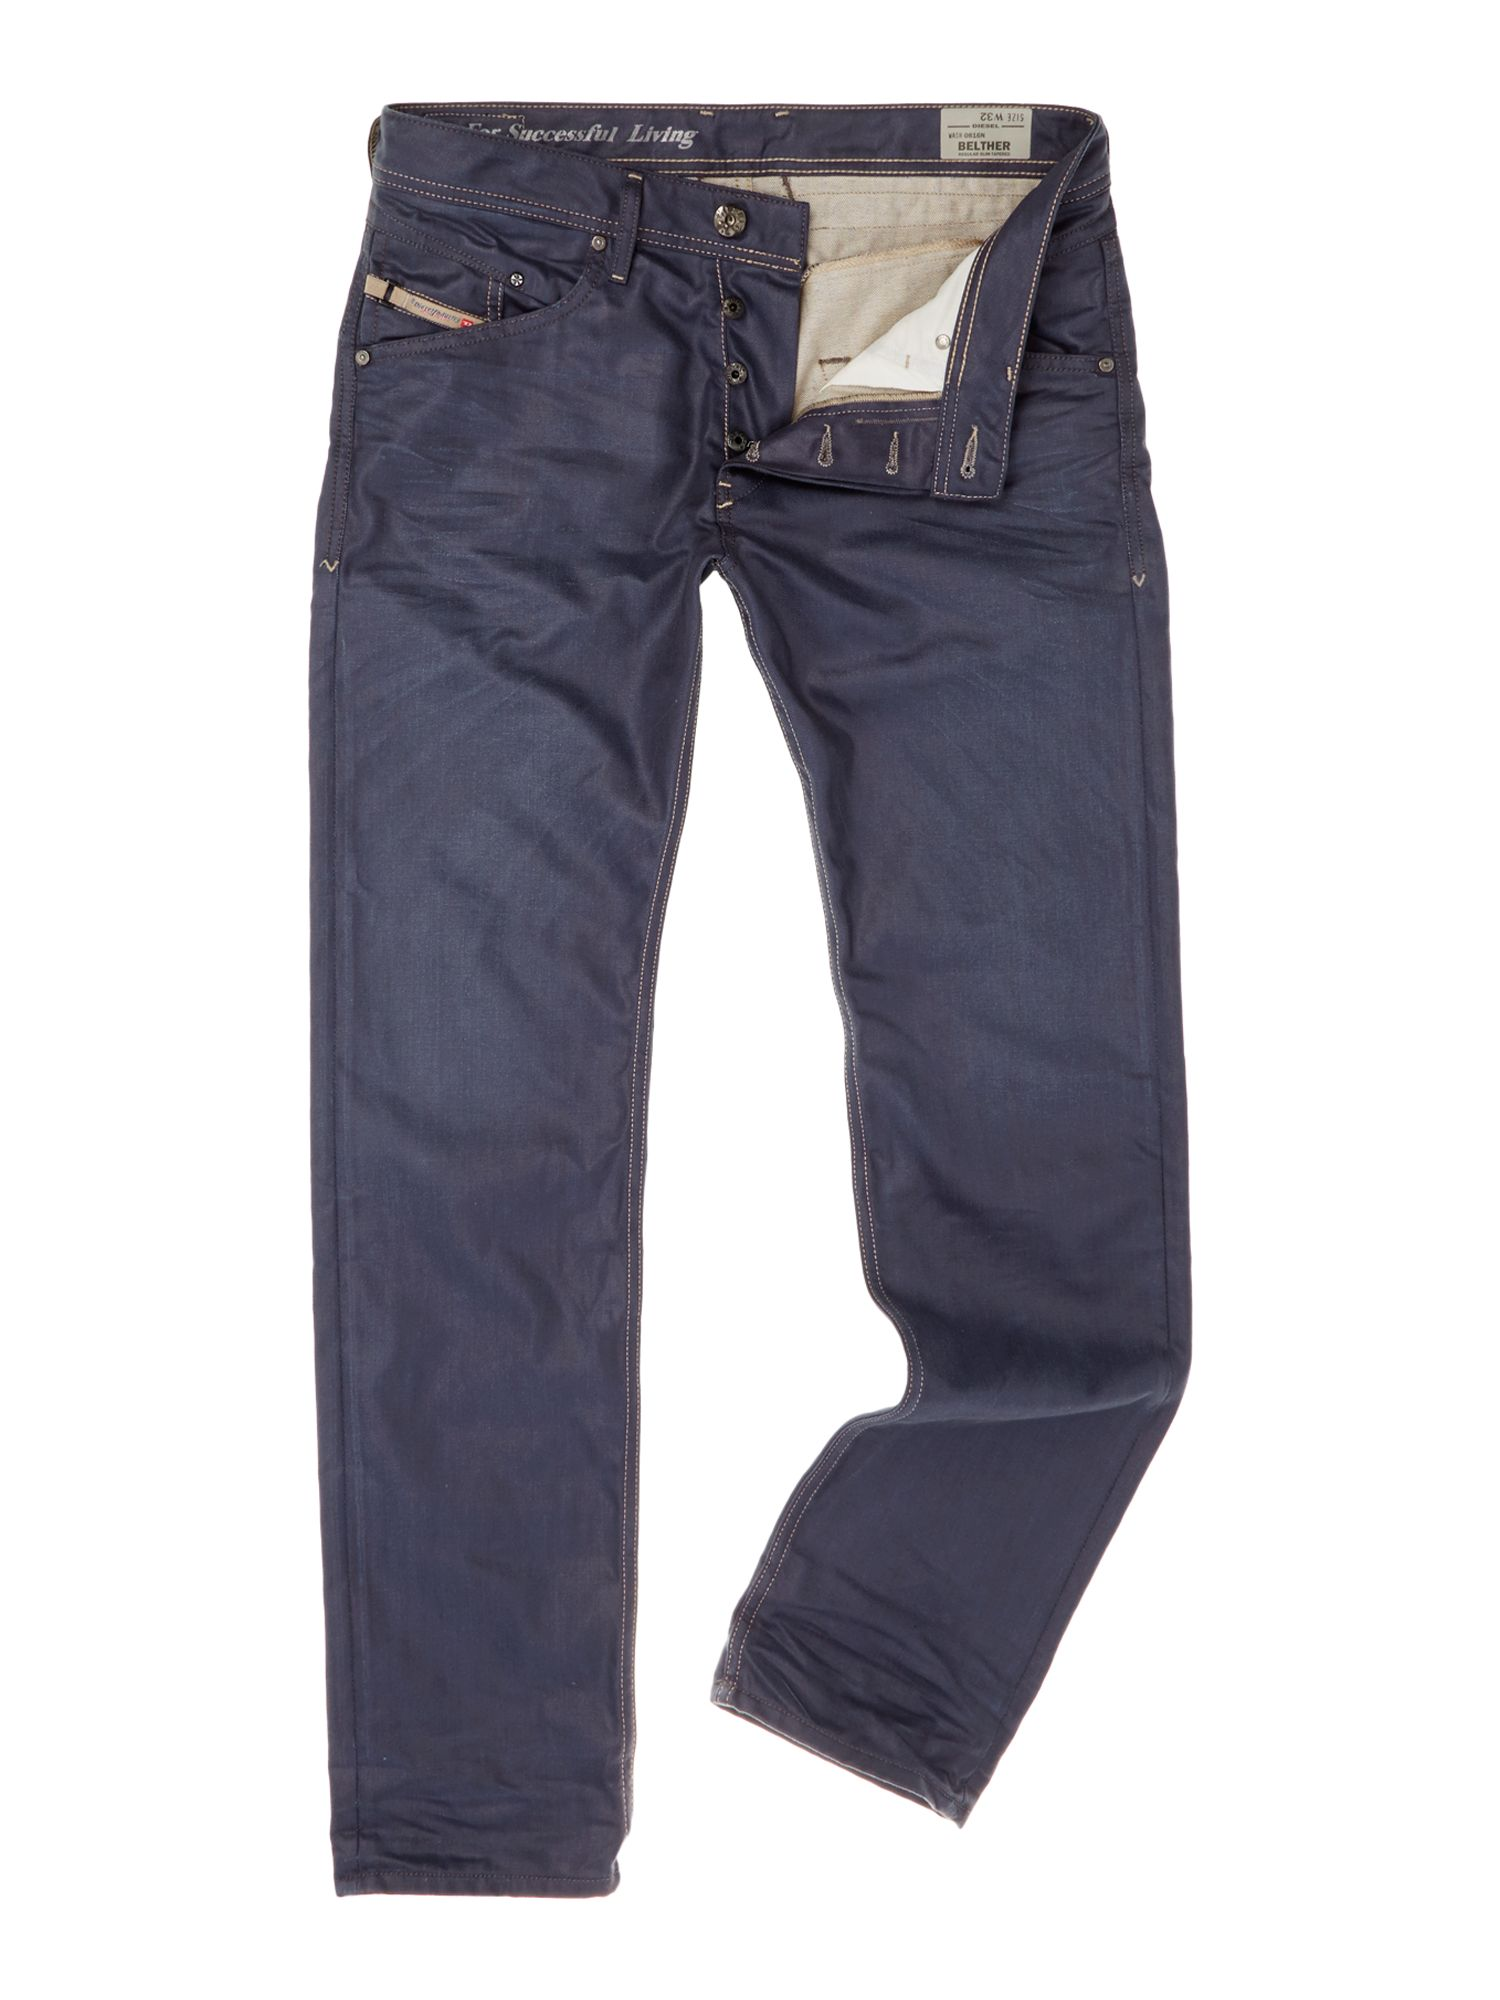 Belther 0816N tapered fit jean